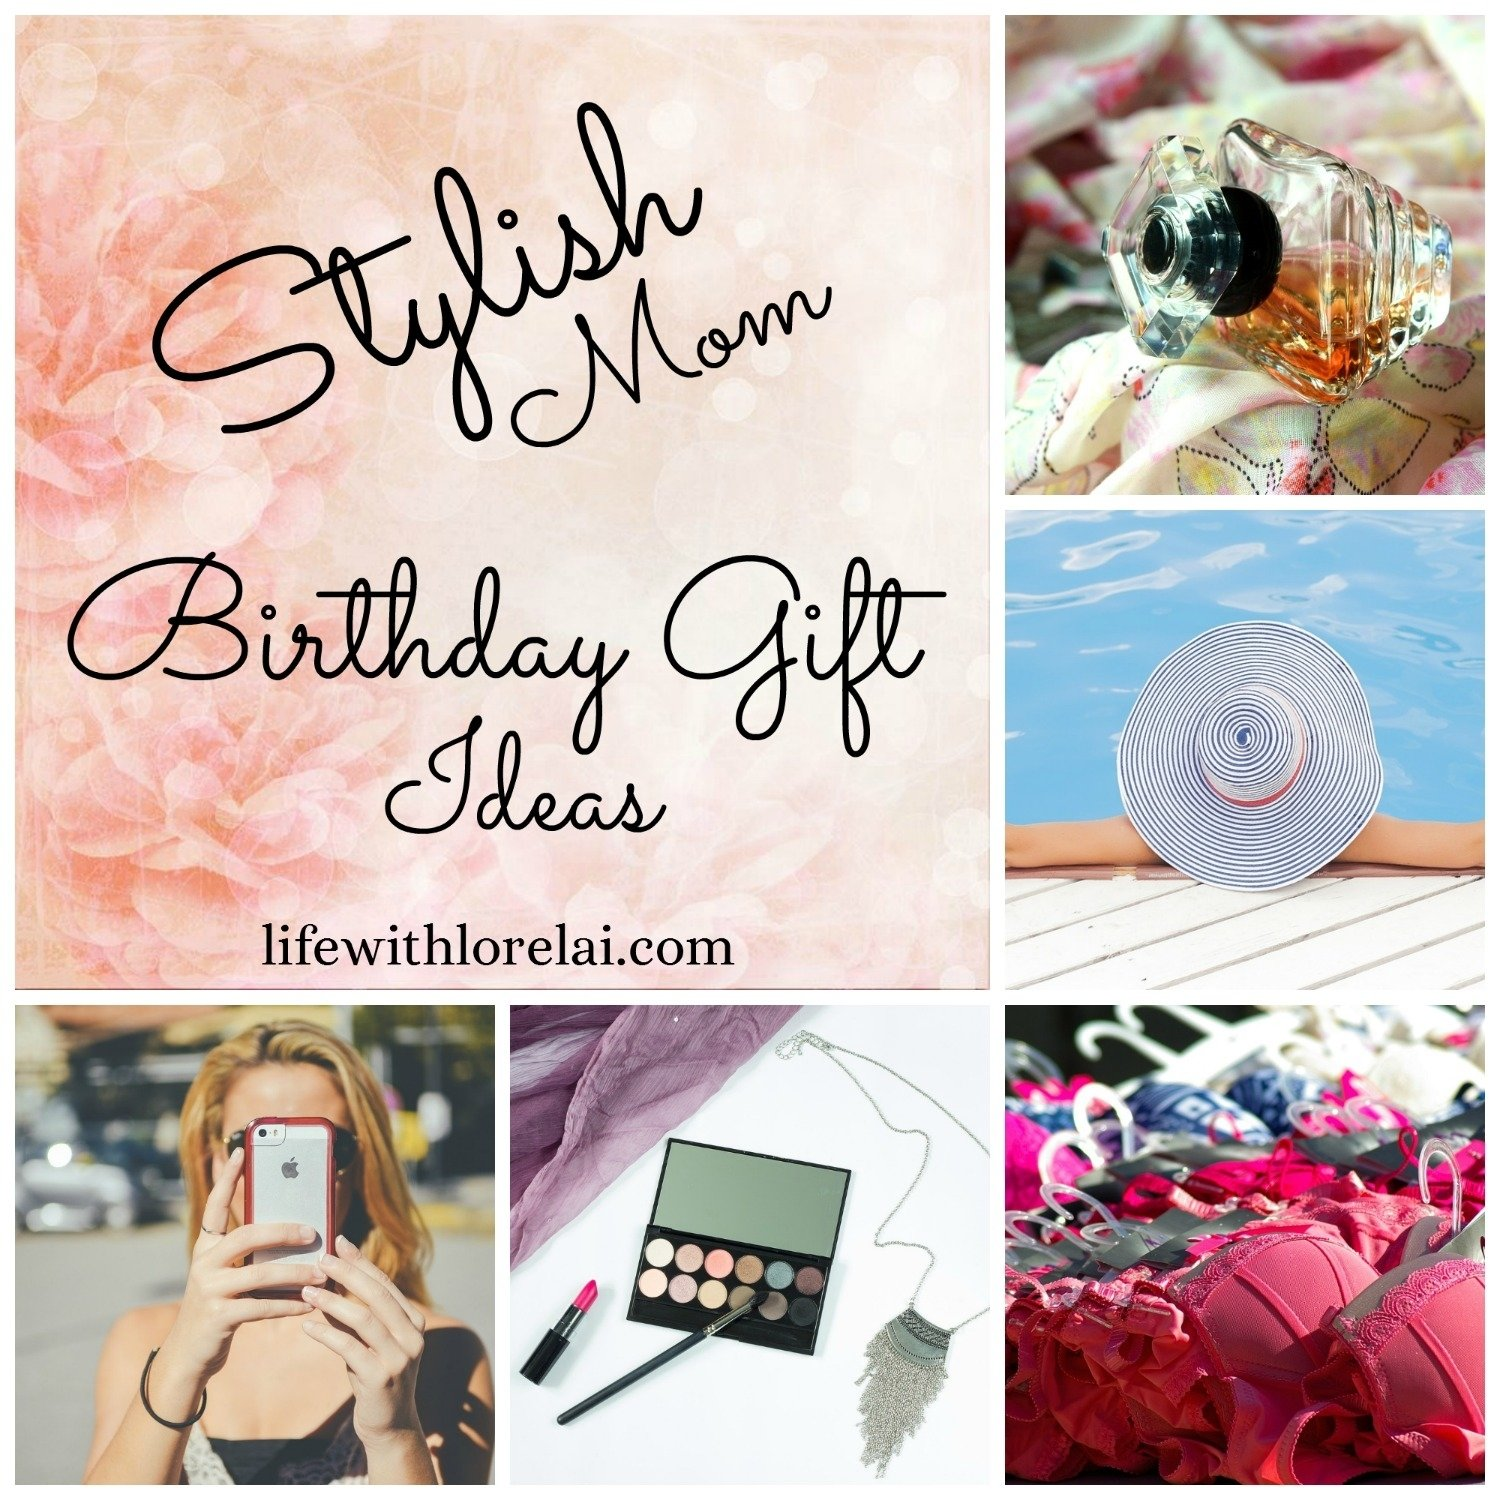 10 Amazing Birthday Gifts Ideas For Mom birthday gift ideas for the stylish mom life with lorelai 2020